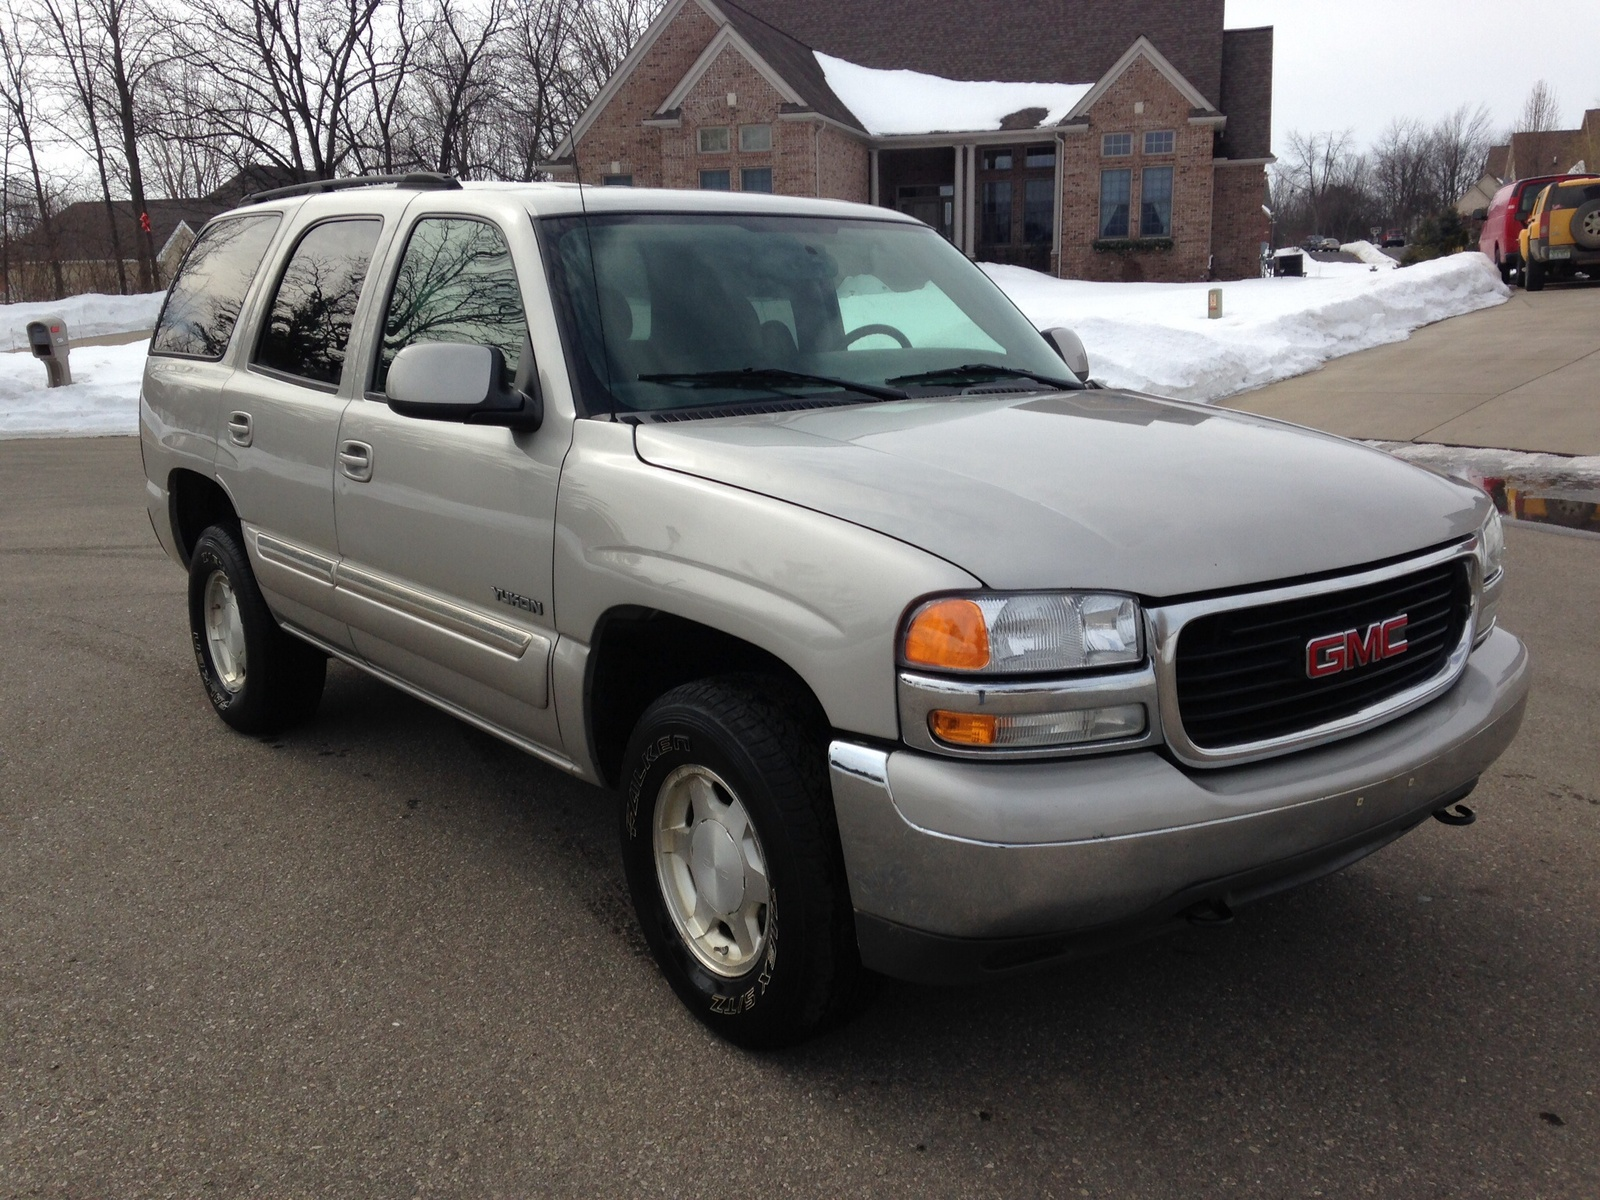 2004 yukon sle vs slt autos post for Motor inn albert lea mn